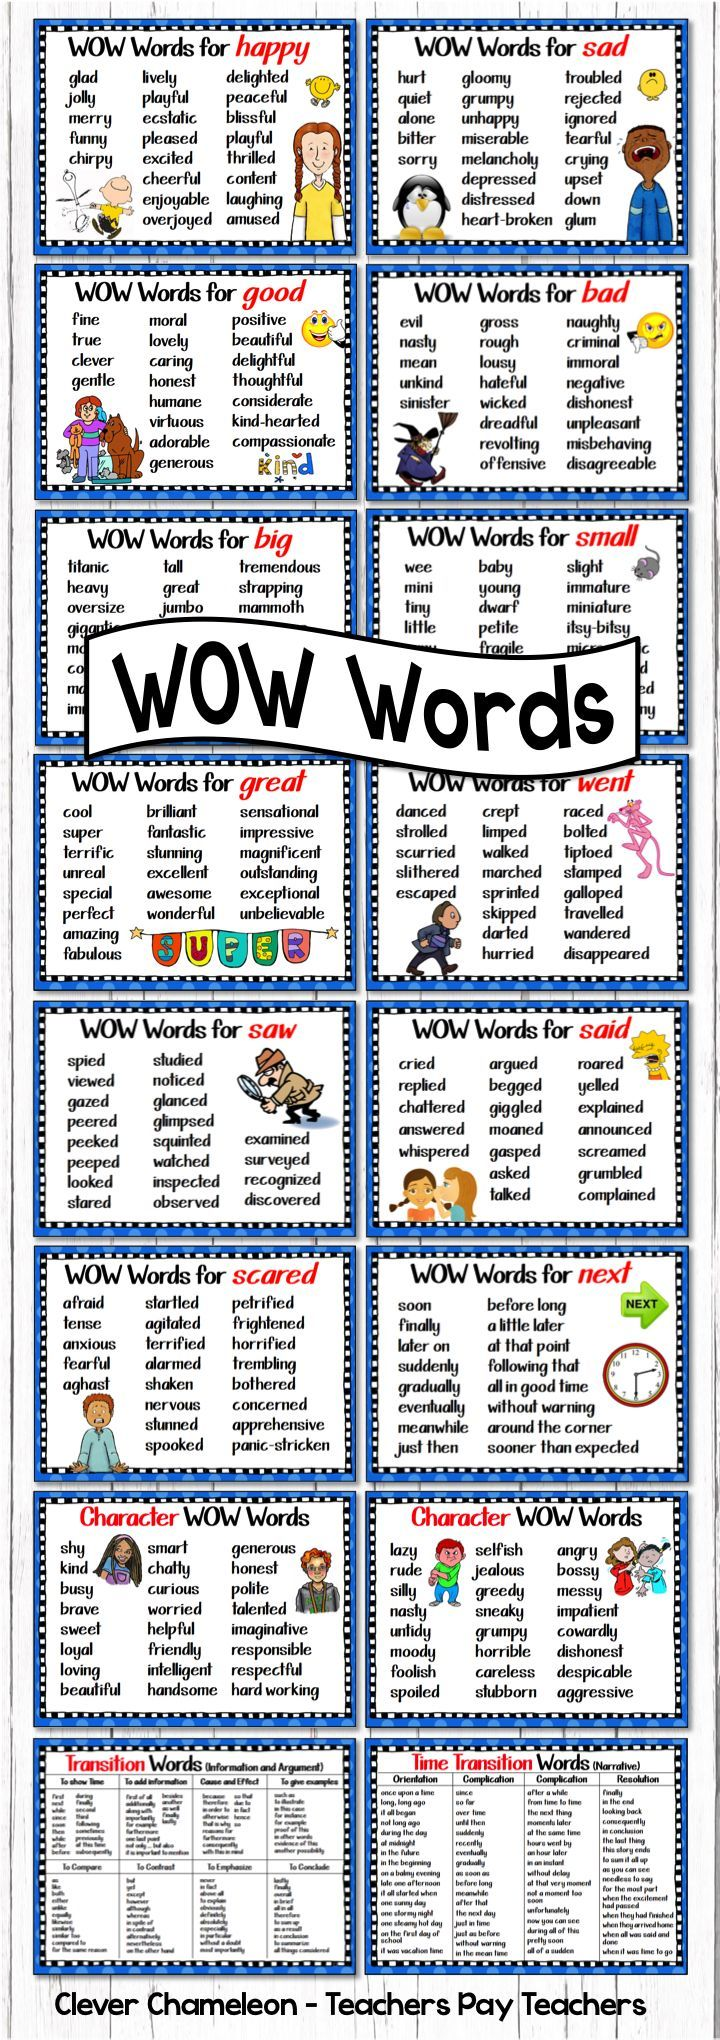 great vocabulary words to use in essays 15-06-2009 vocabulary that is more high-grade and not so basic , so it would impress the teacher and boost my english-vocab knowledge and perhaps gain more marks in use.